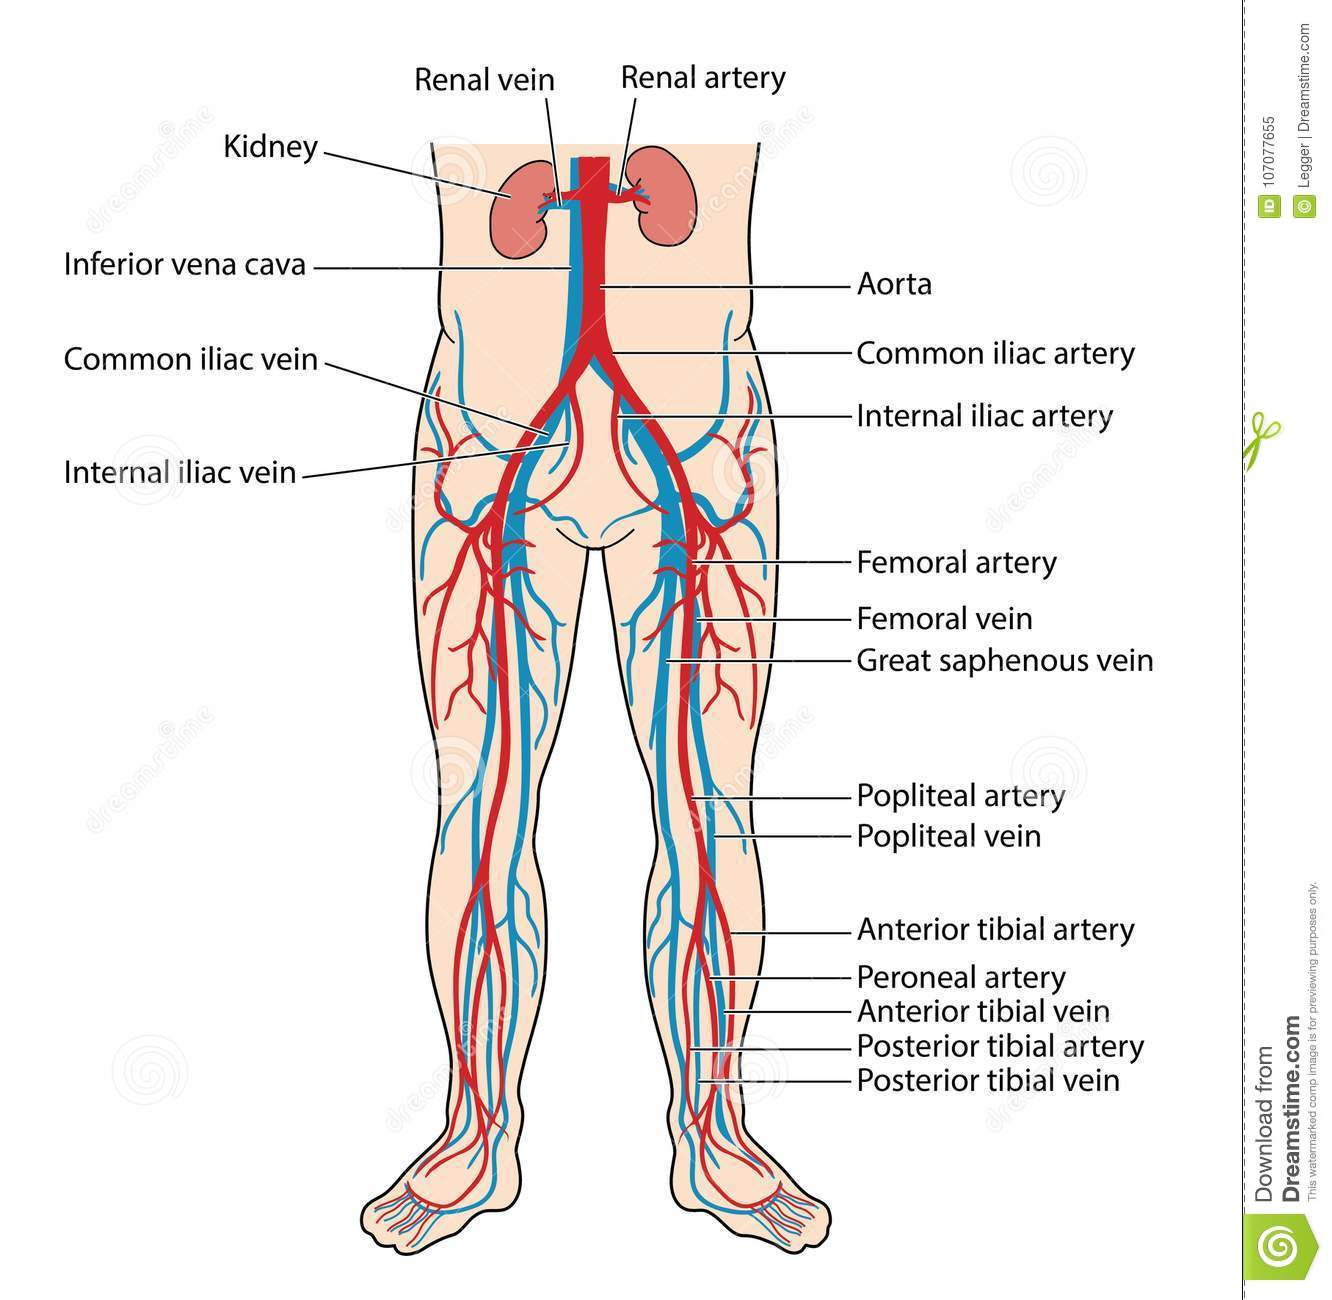 vascular anatomy diagram lower wiring for 7 pin trailer lights blood vessels of the body stock vector illustration vein